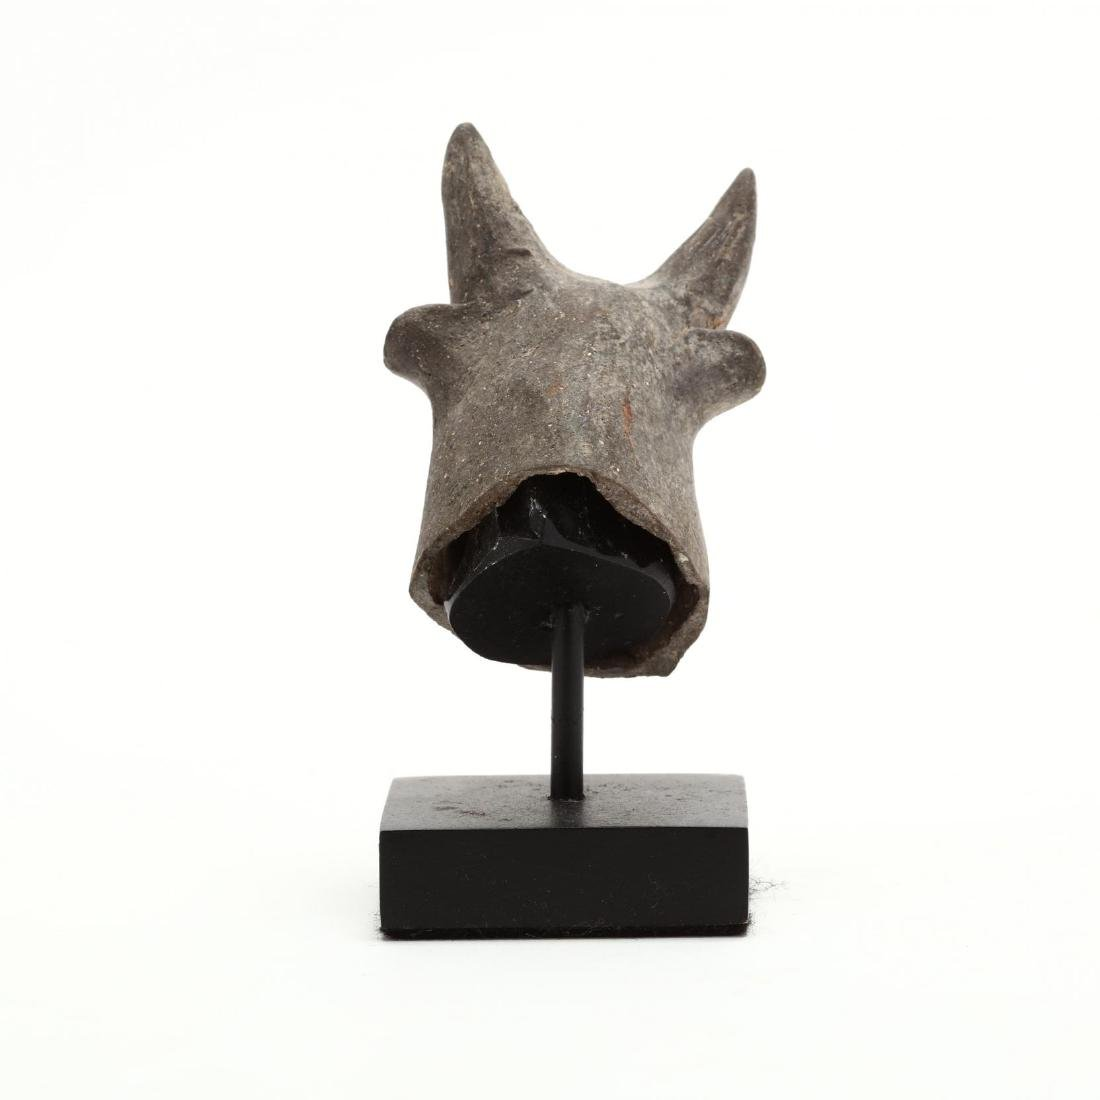 Cypriot Bronze Age Head of a Bull From a Larger Piece - 3